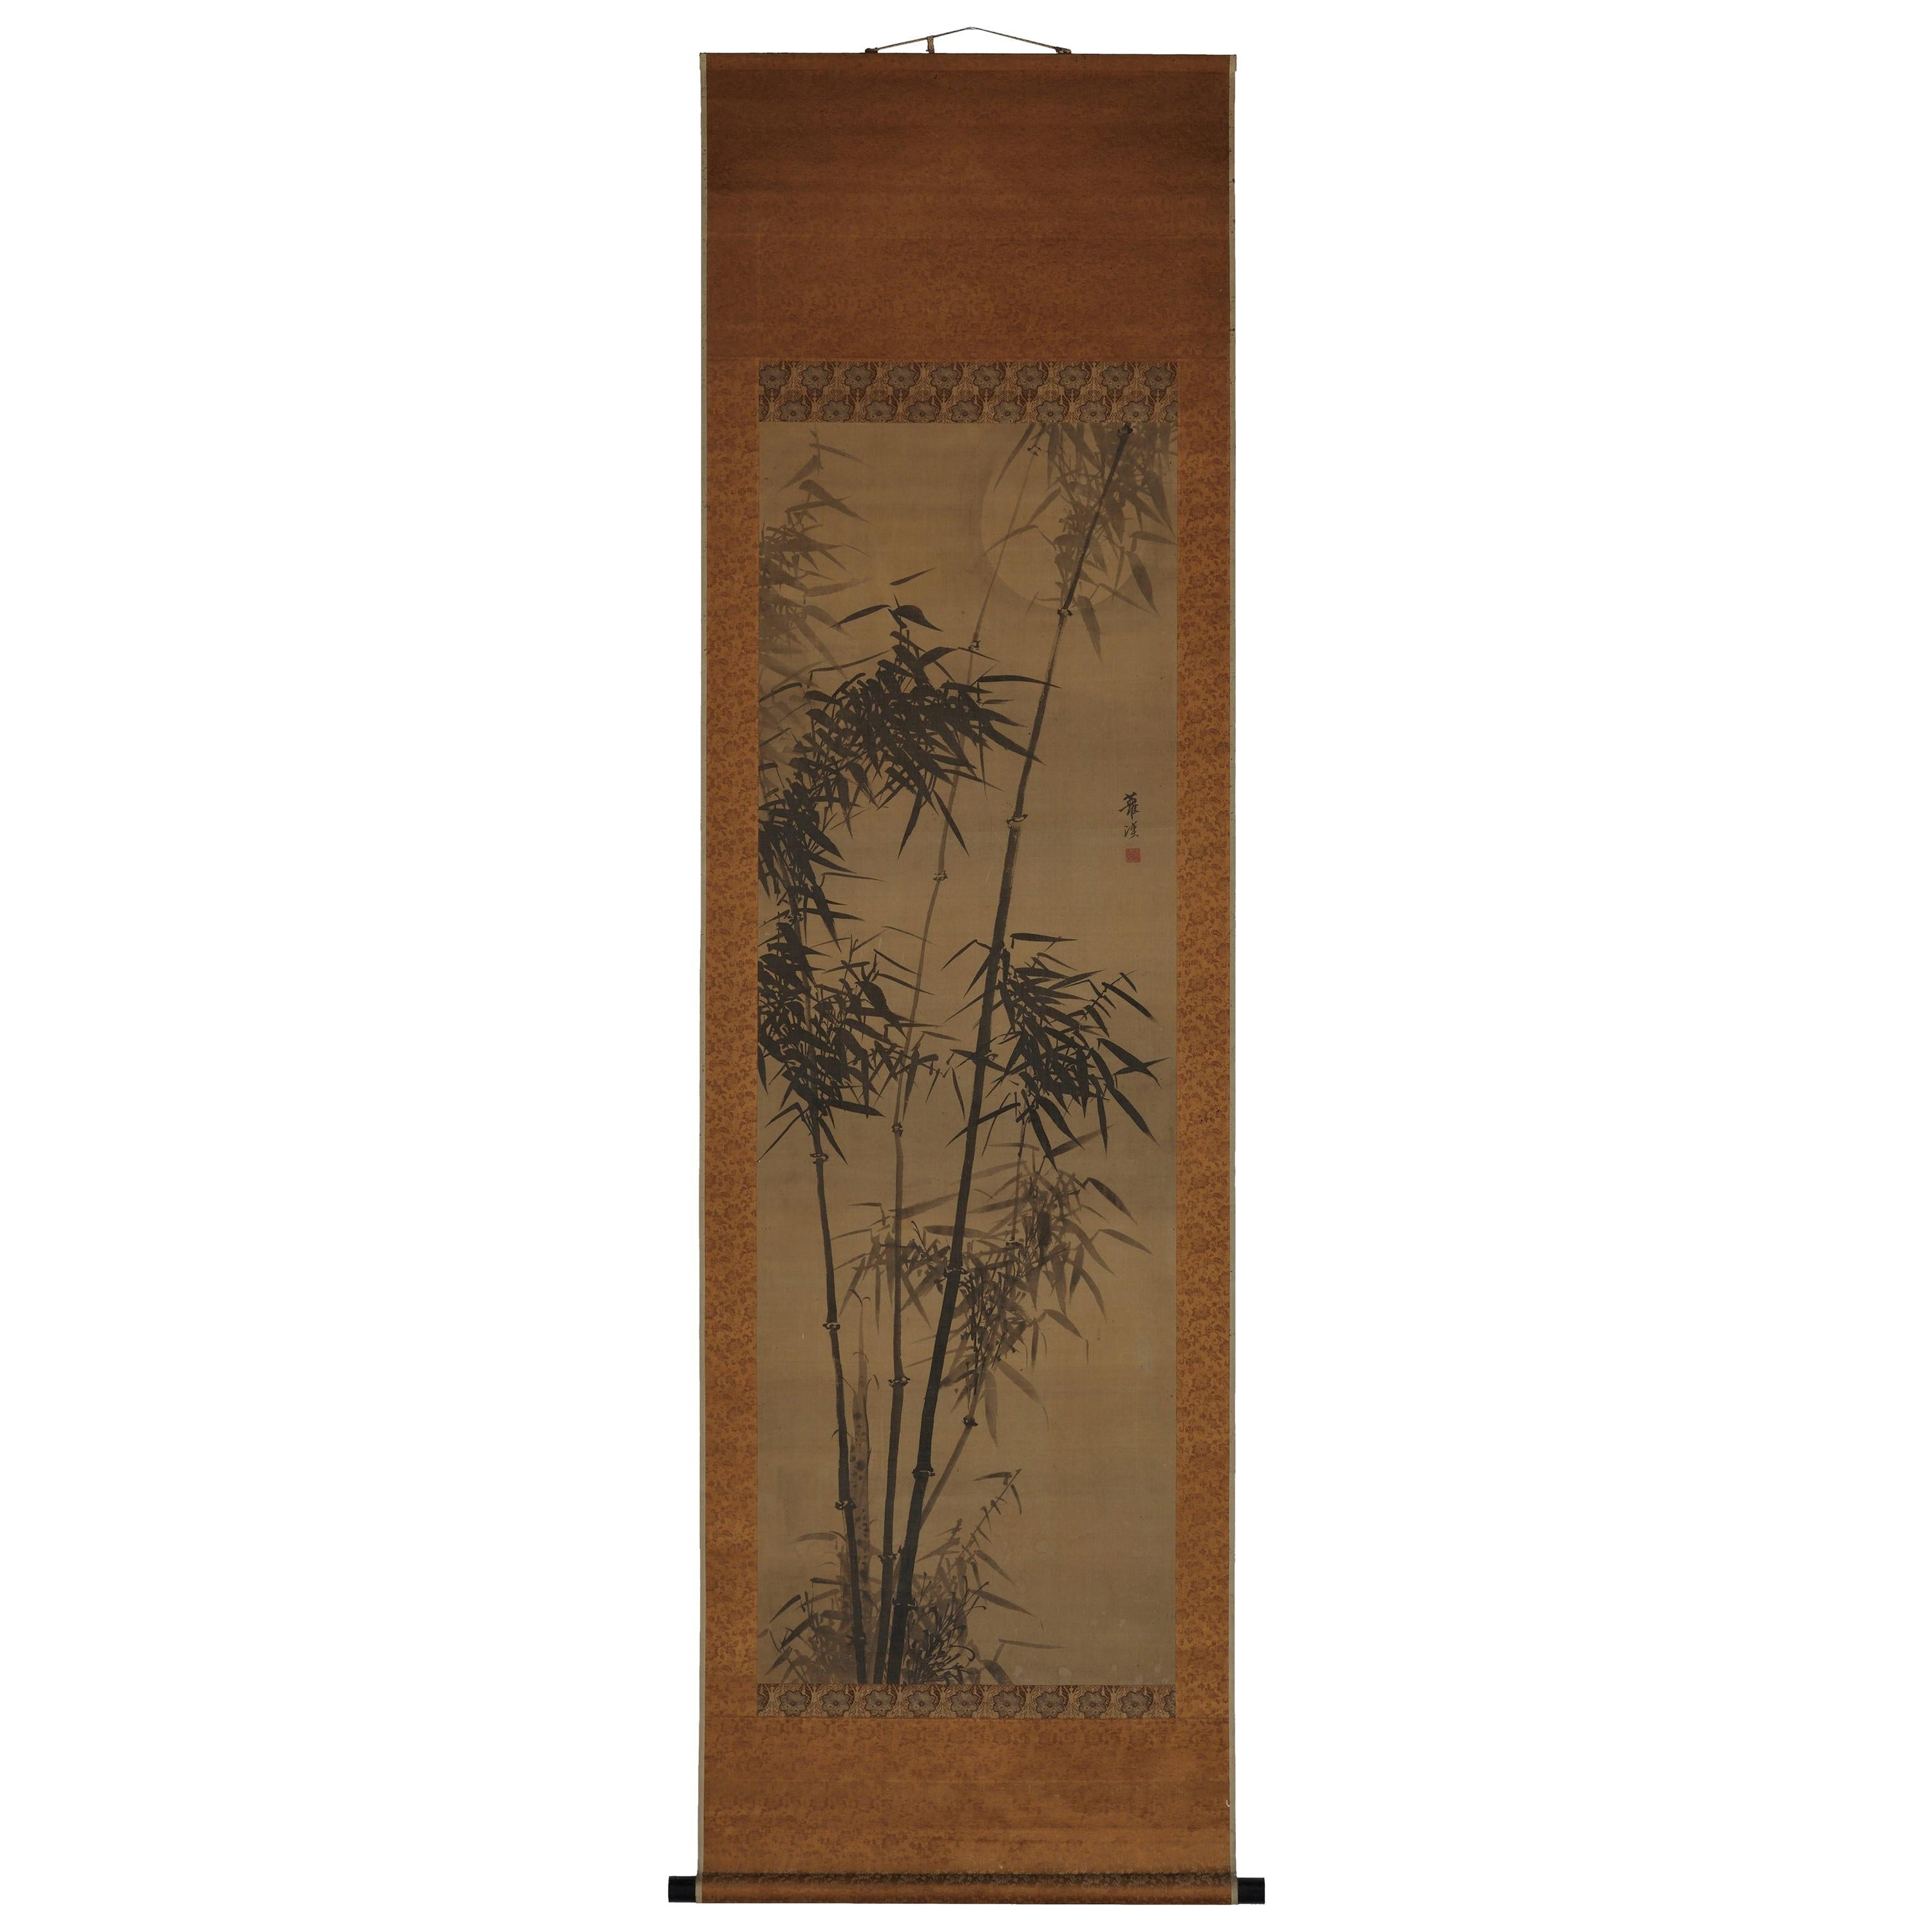 Japanese Painting, Hanging Scroll, 19th Century Bamboo in Moonlight